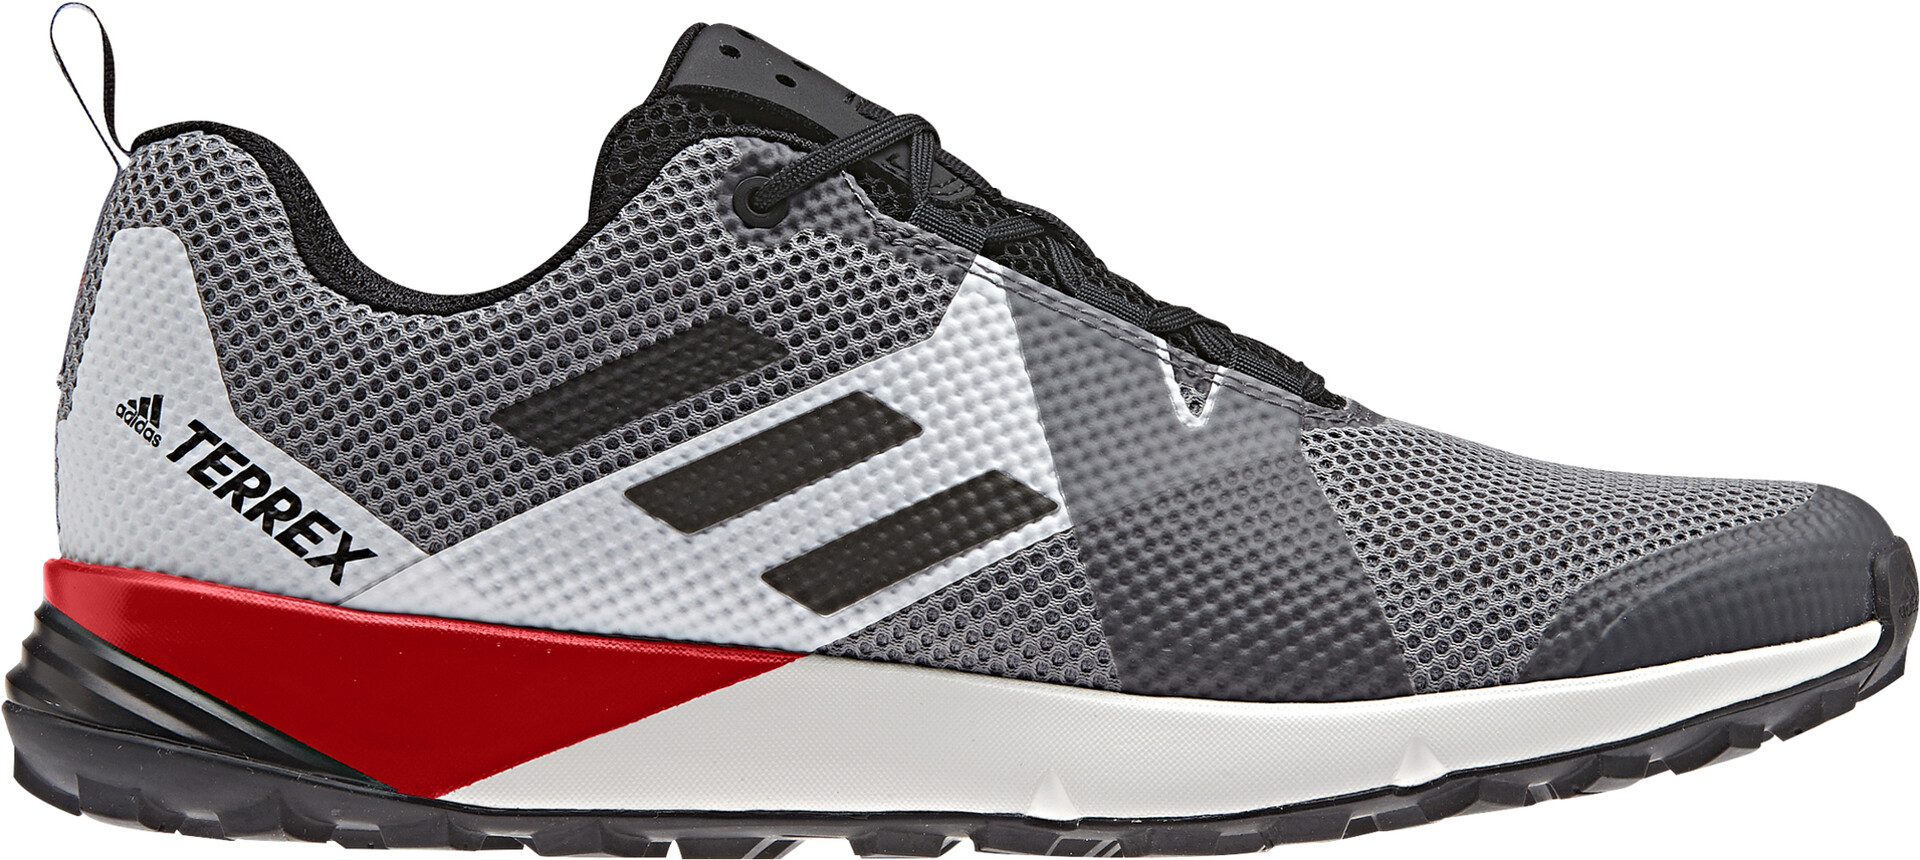 Terrex Red Two Blackactive Adidas Chaussures HommeGrey Threecore 76bfgy